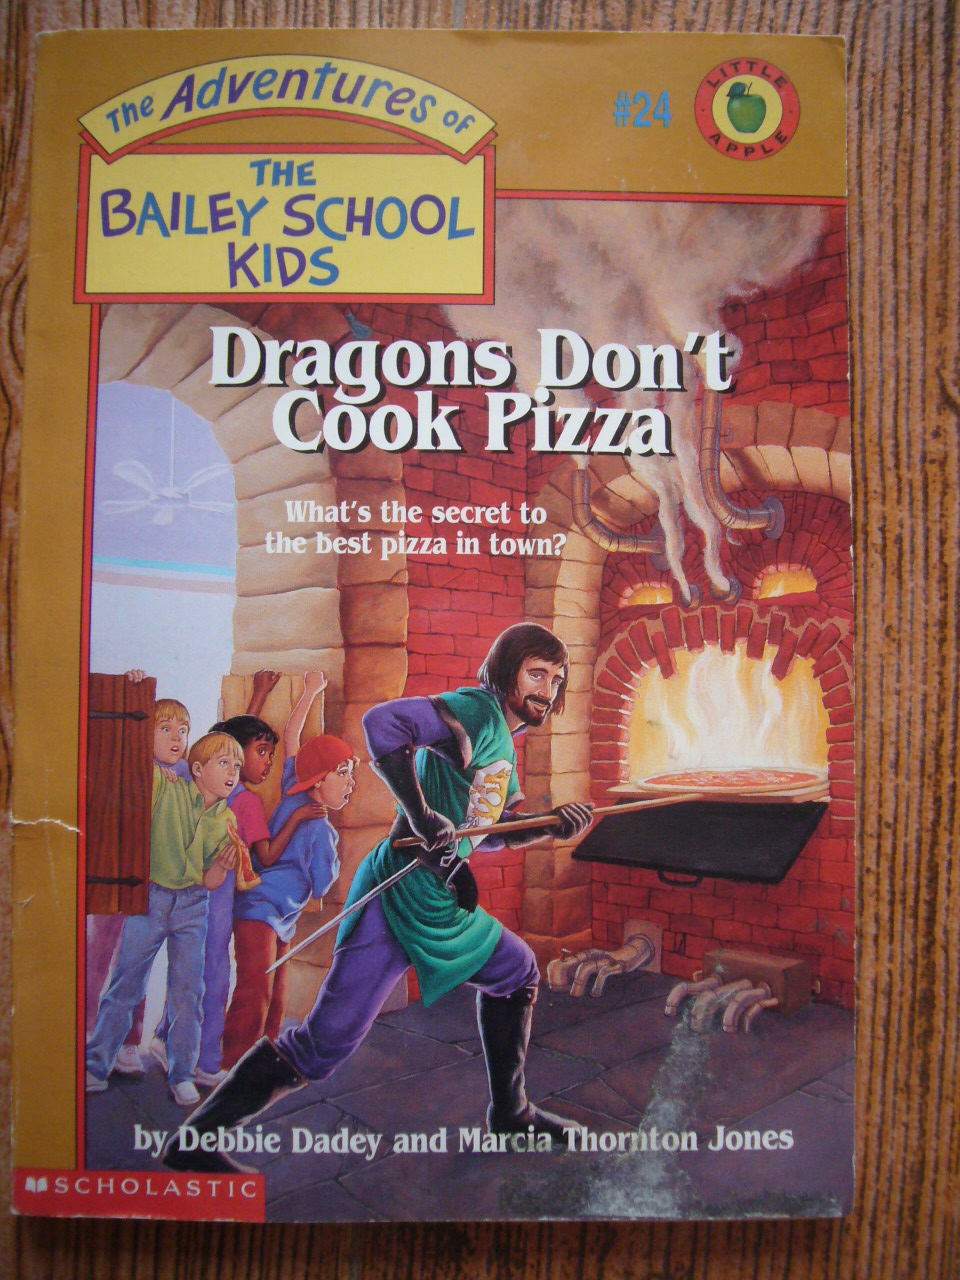 Dragons Don't Cook Pizza (The Bailey School Kids 24)